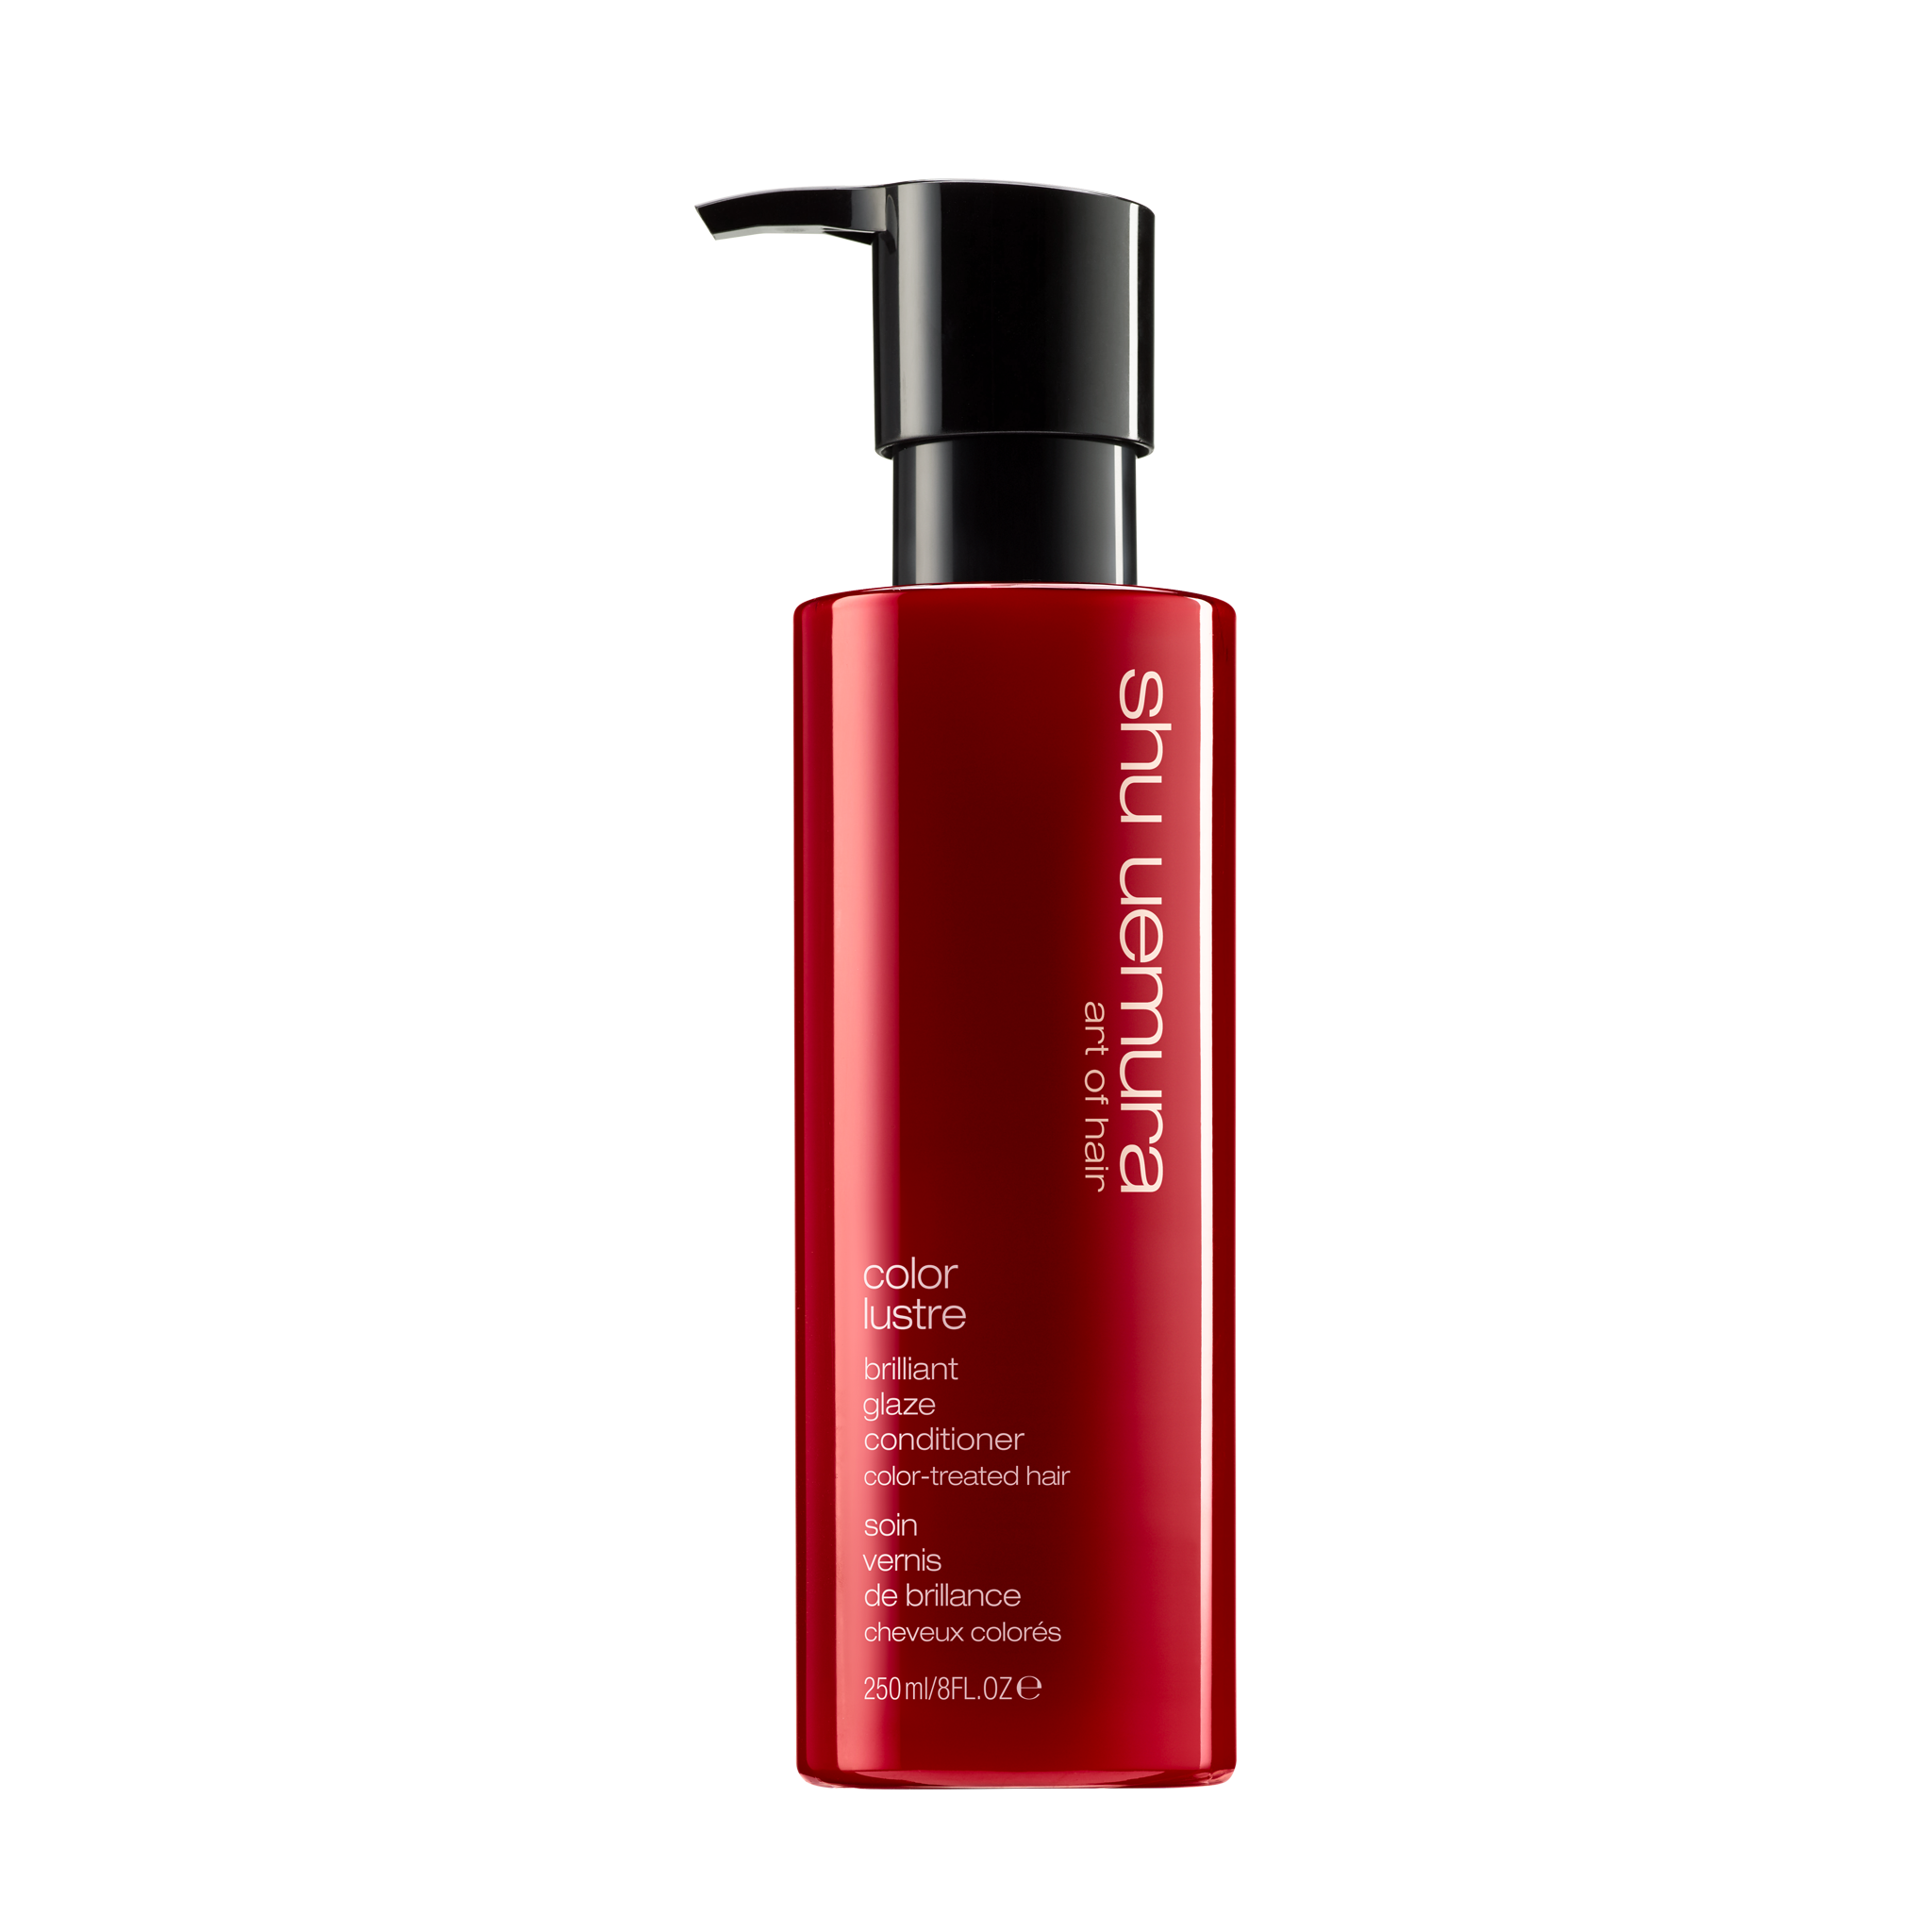 Brilliant Glaze Conditioner for colour-treated hair | COLOR LUSTRE | by SHU UEMURA